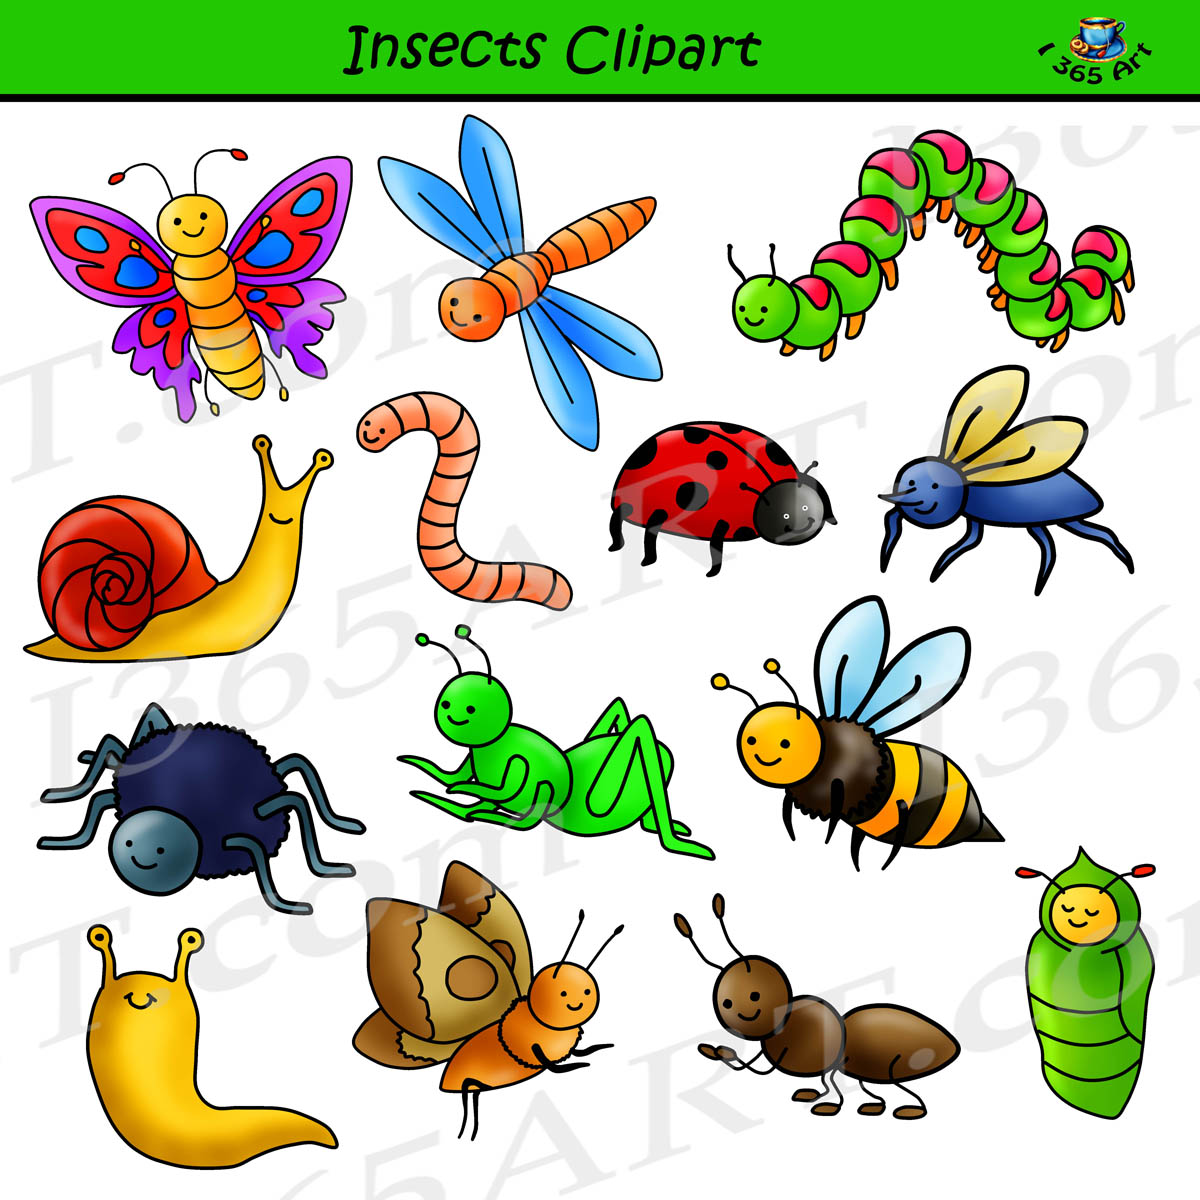 Cliparts insect image royalty free download Insect clipart - 75 transparent clip arts, images and pictures for ... image royalty free download